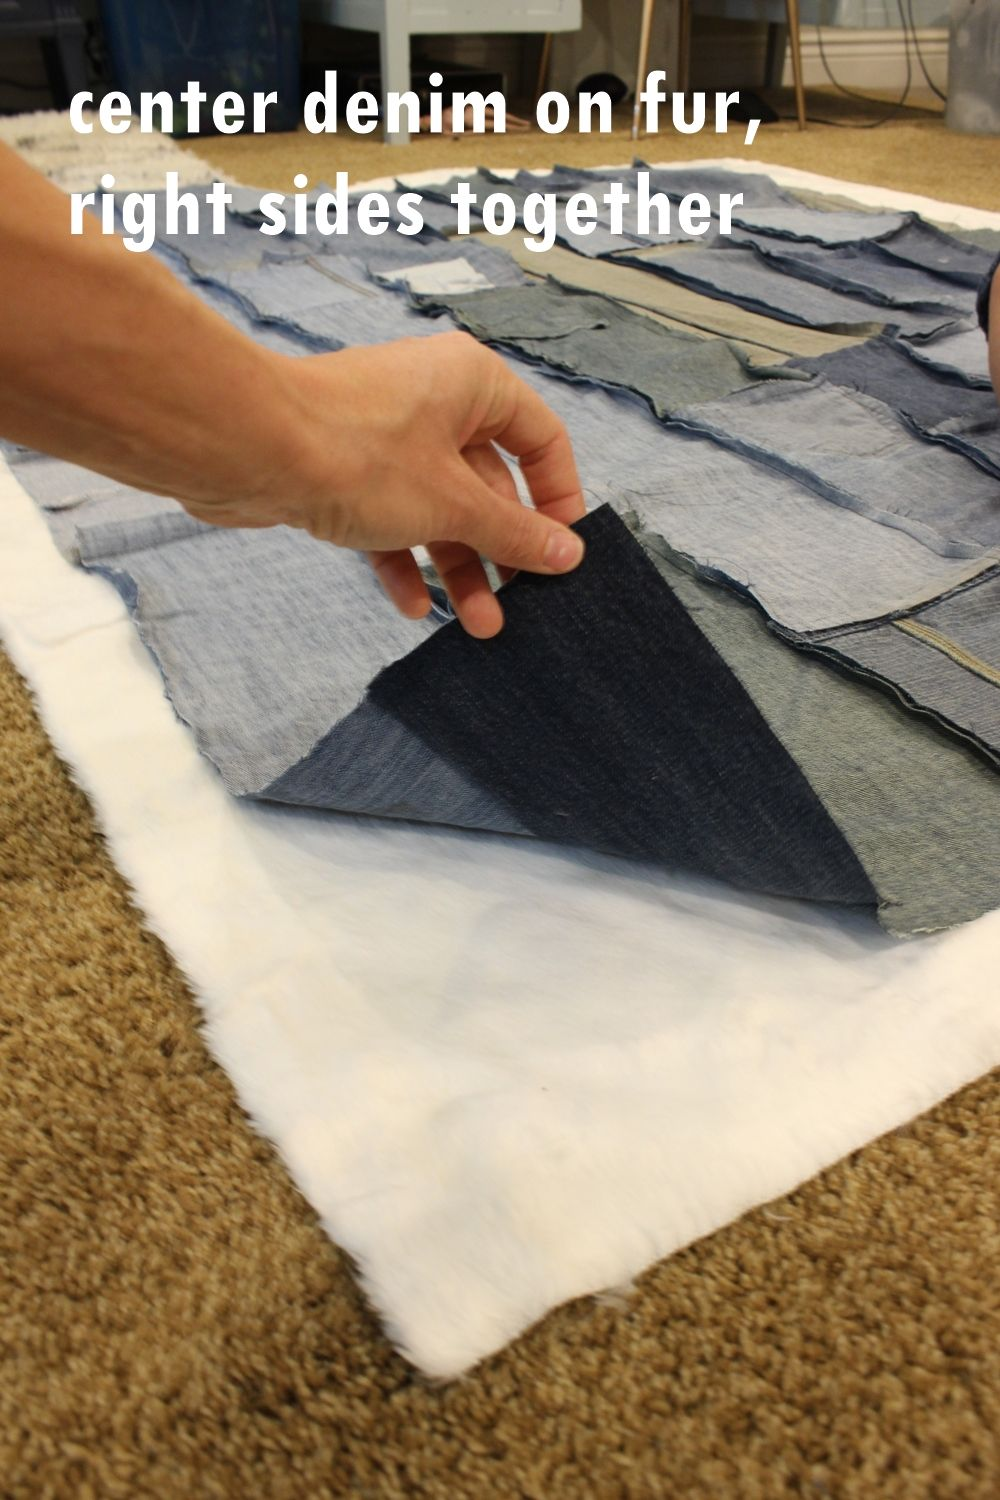 Lay your denim piece on top of the fur